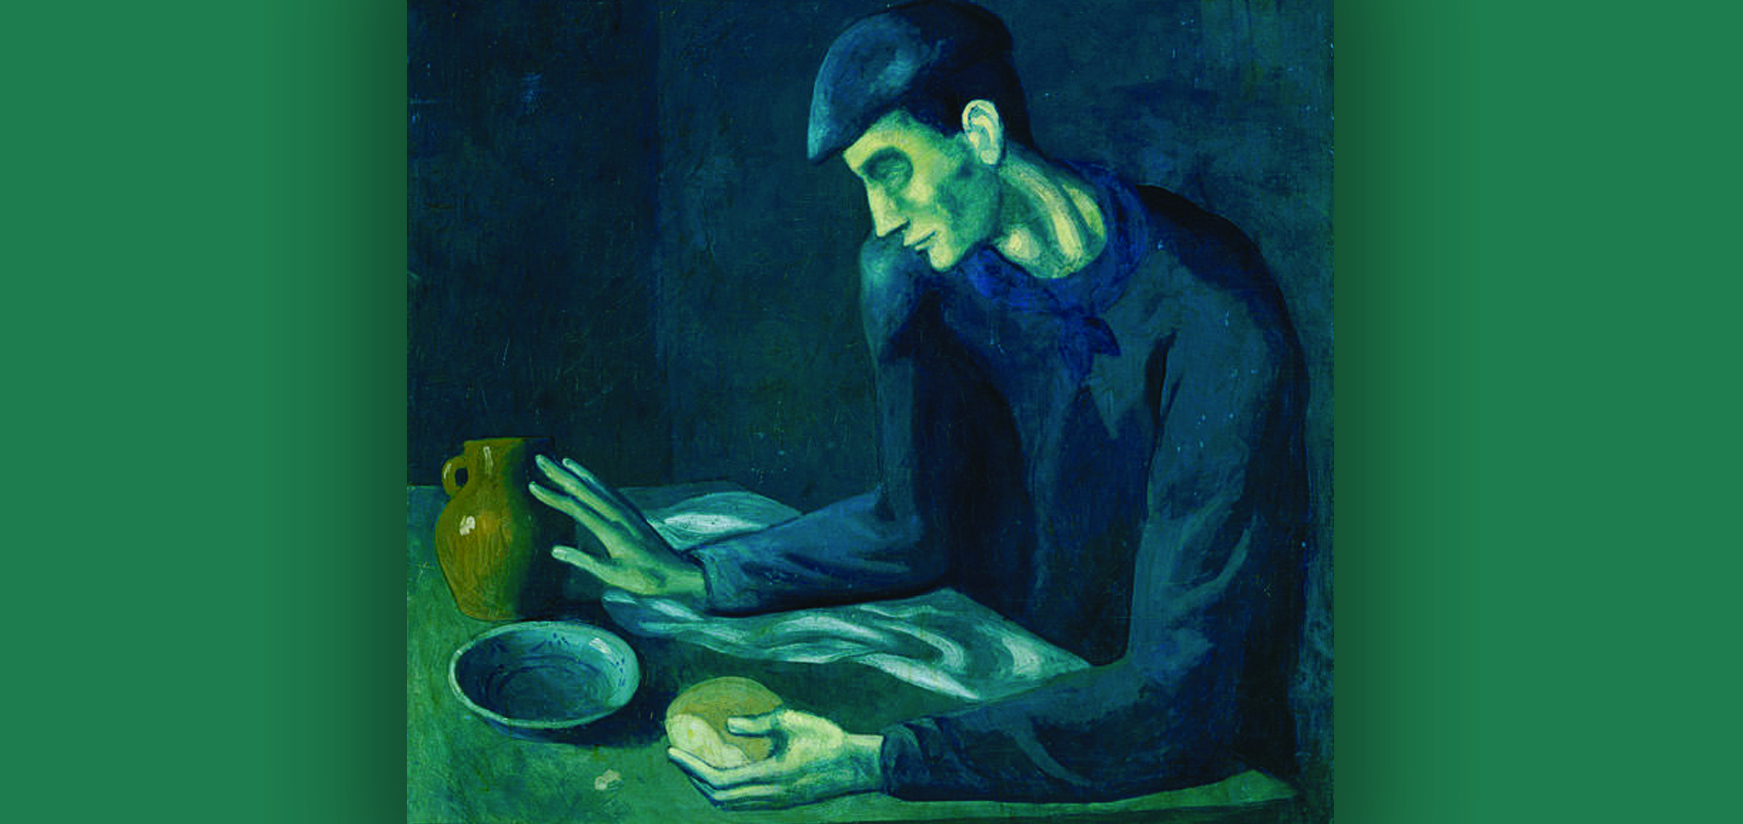 Pablo Picasso, 1903, The Blind Man's Meal, oil on canvas